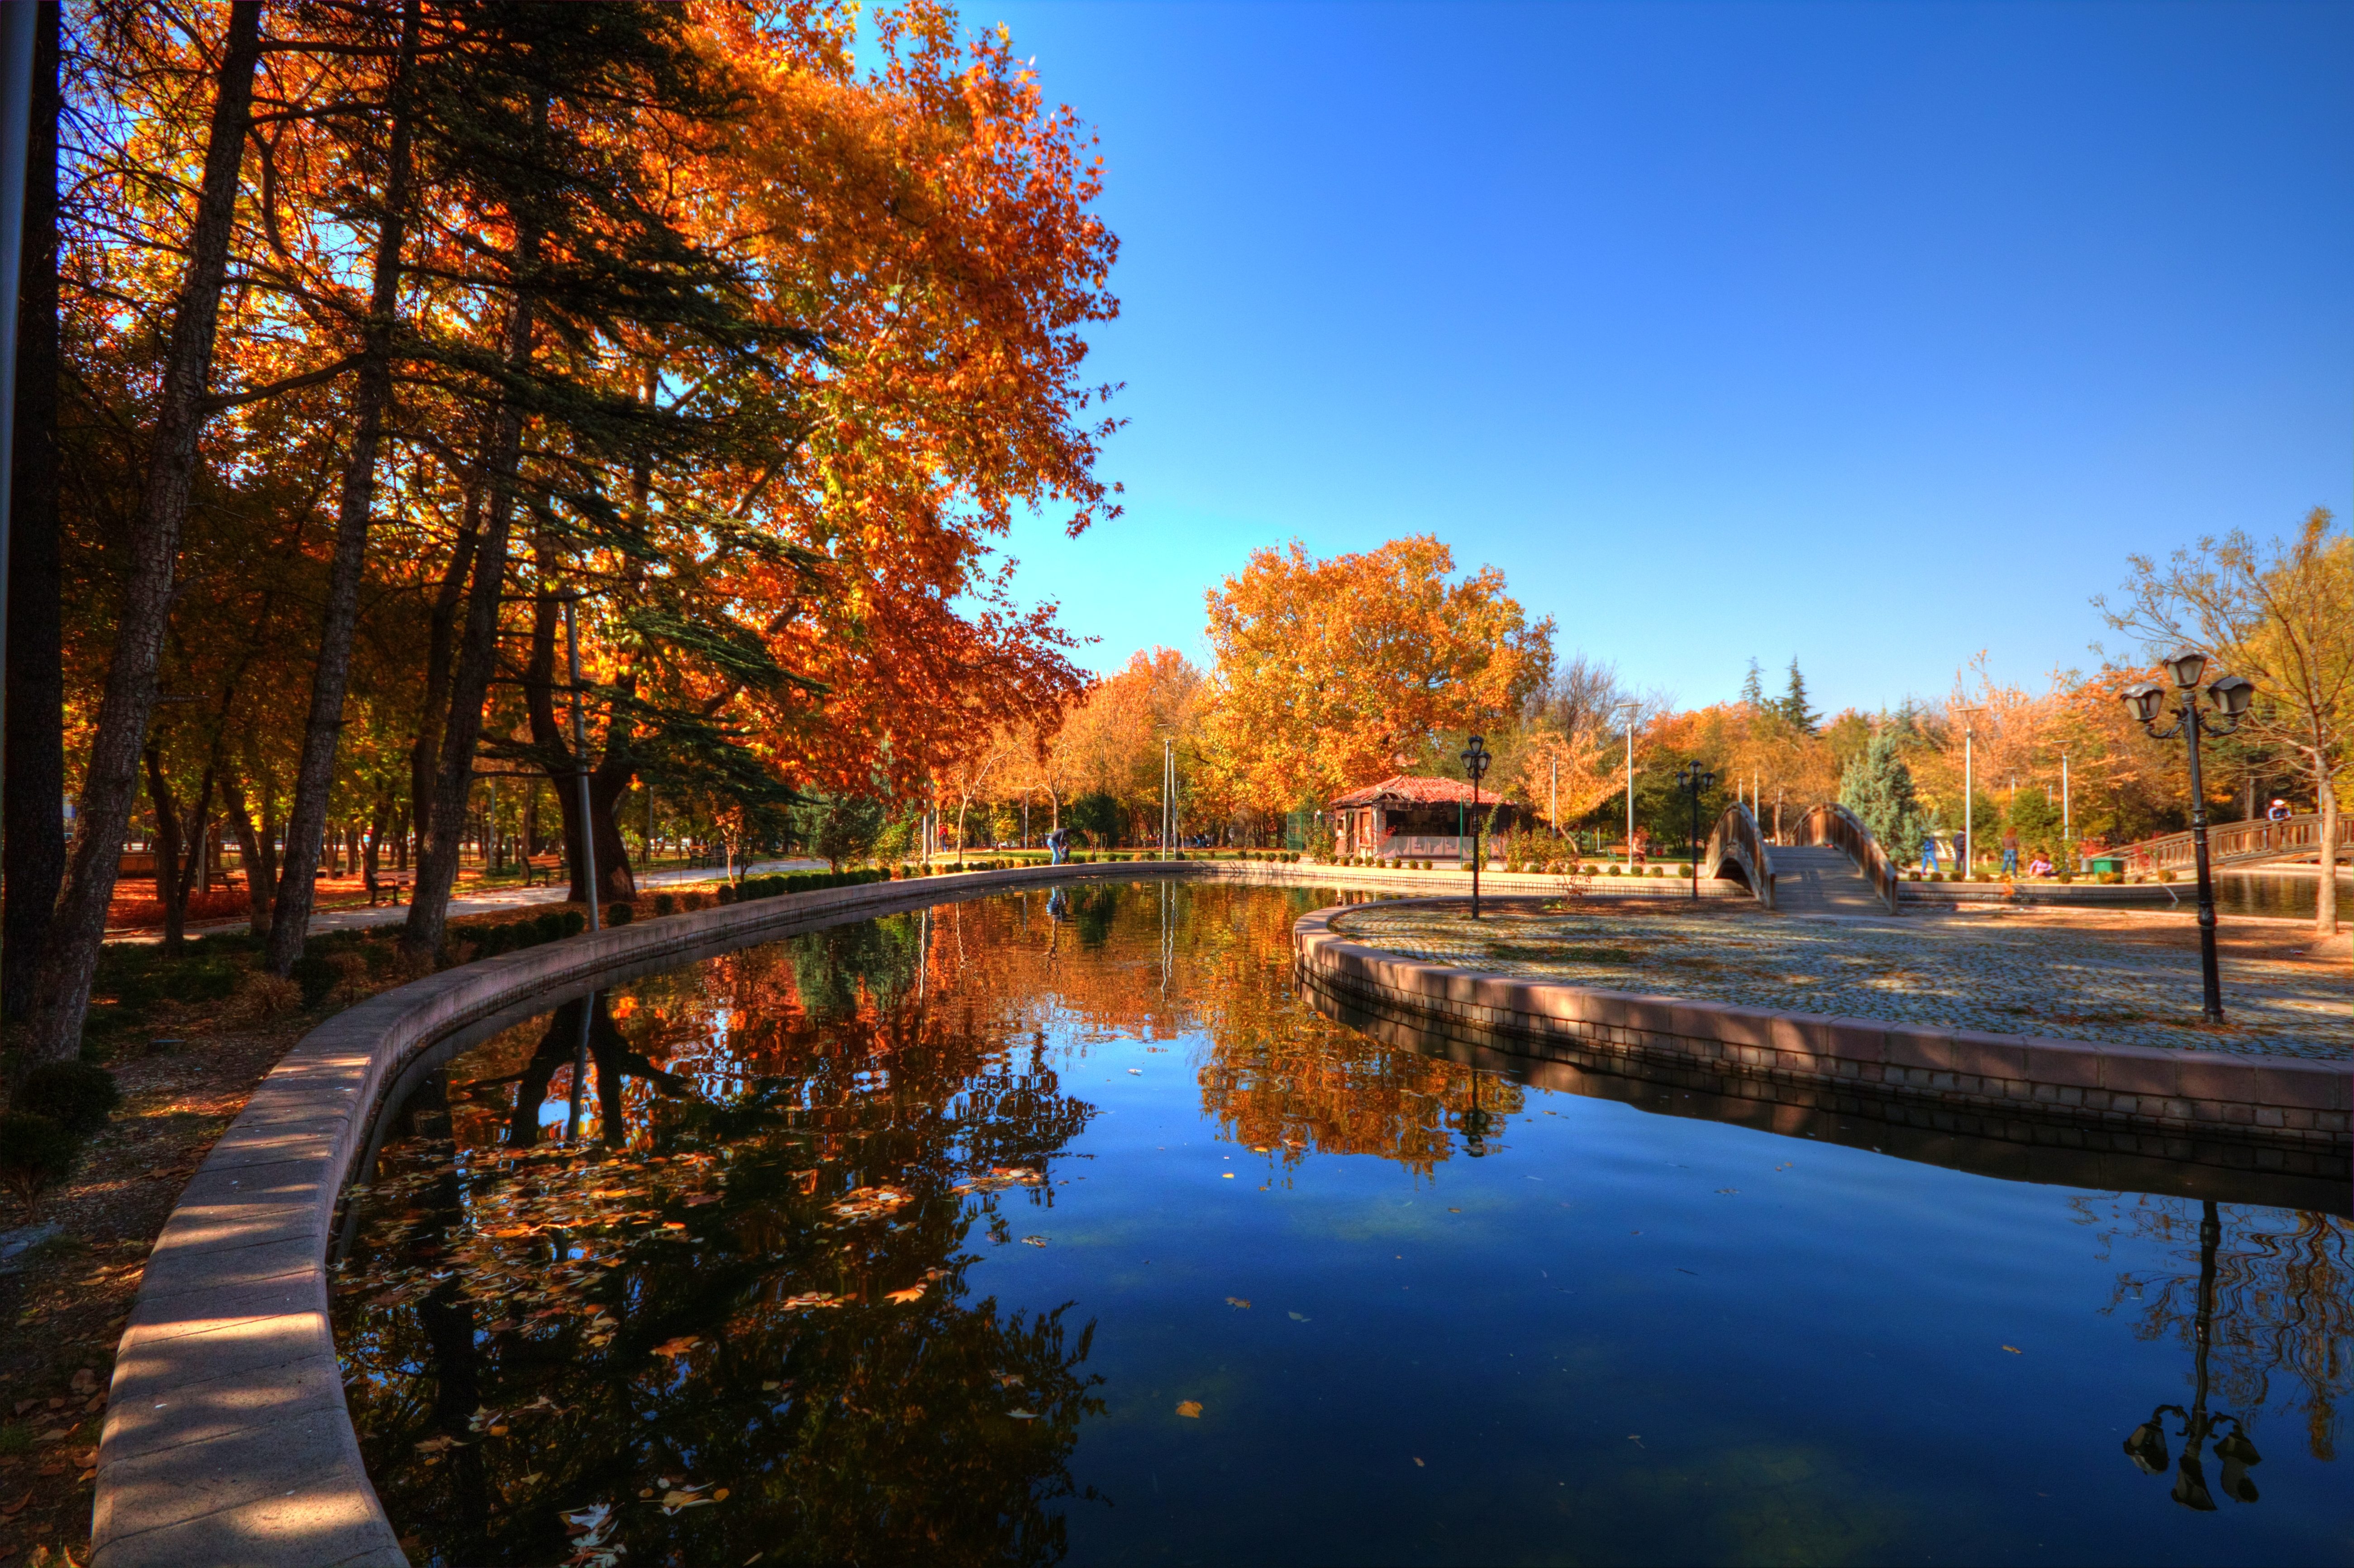 20 Creative Fall Photography Ideas - Autumn at Park - Omer Unlu via Flickr | https://www.roseclearfield.com